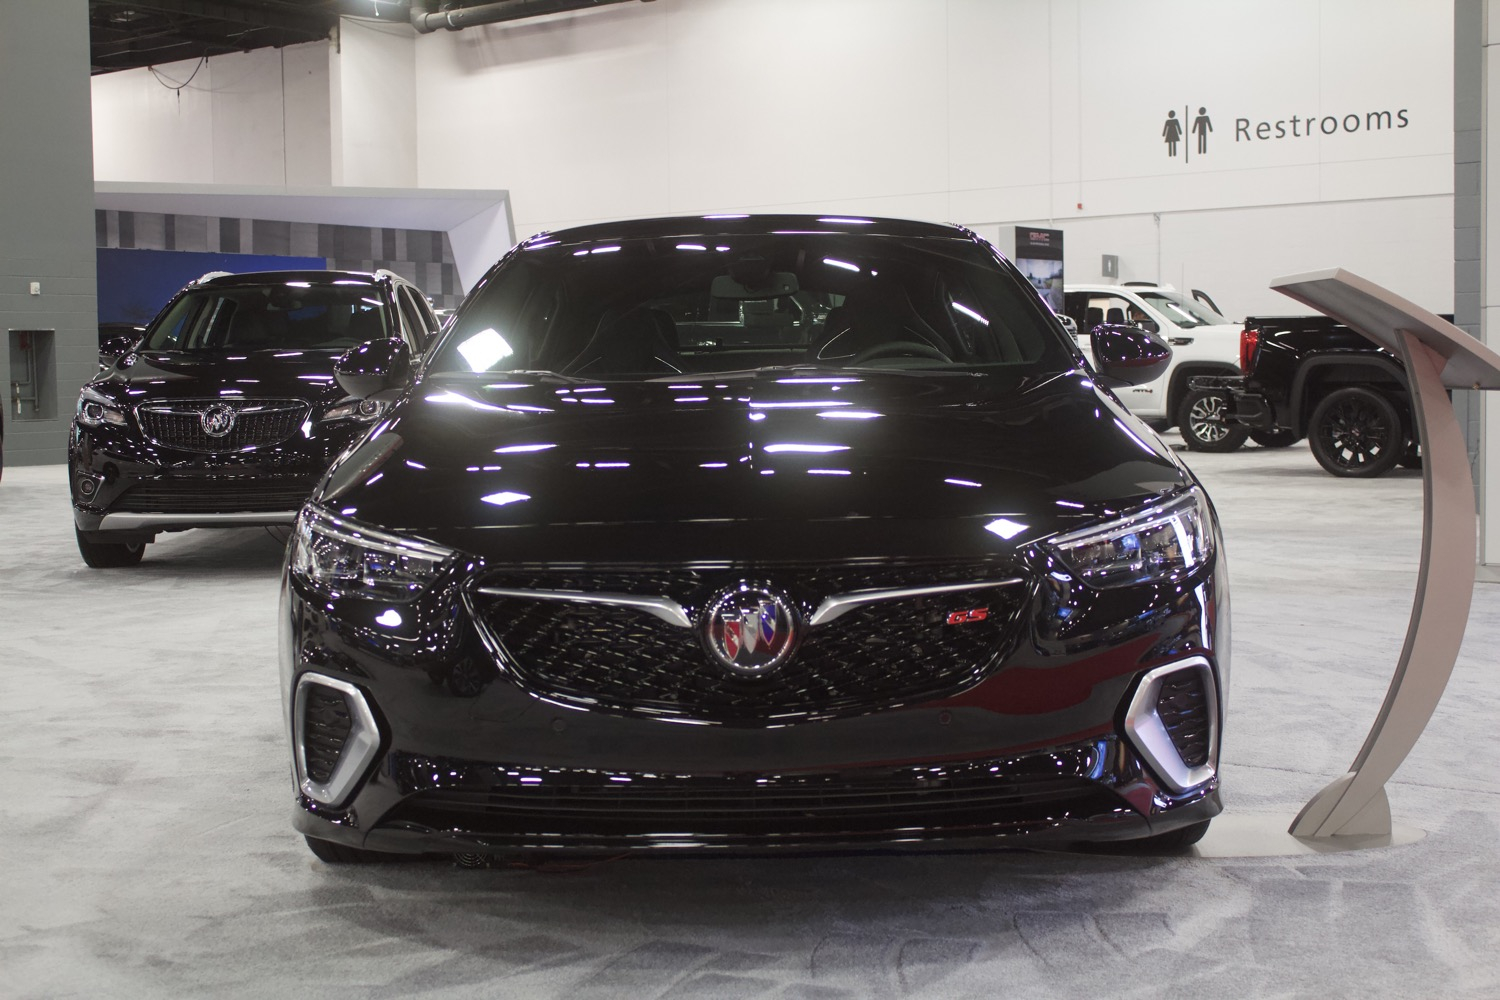 2021 Buick Regal Info, Specs, Wiki | Gm Authority Show Me A 2021 Buick Regal